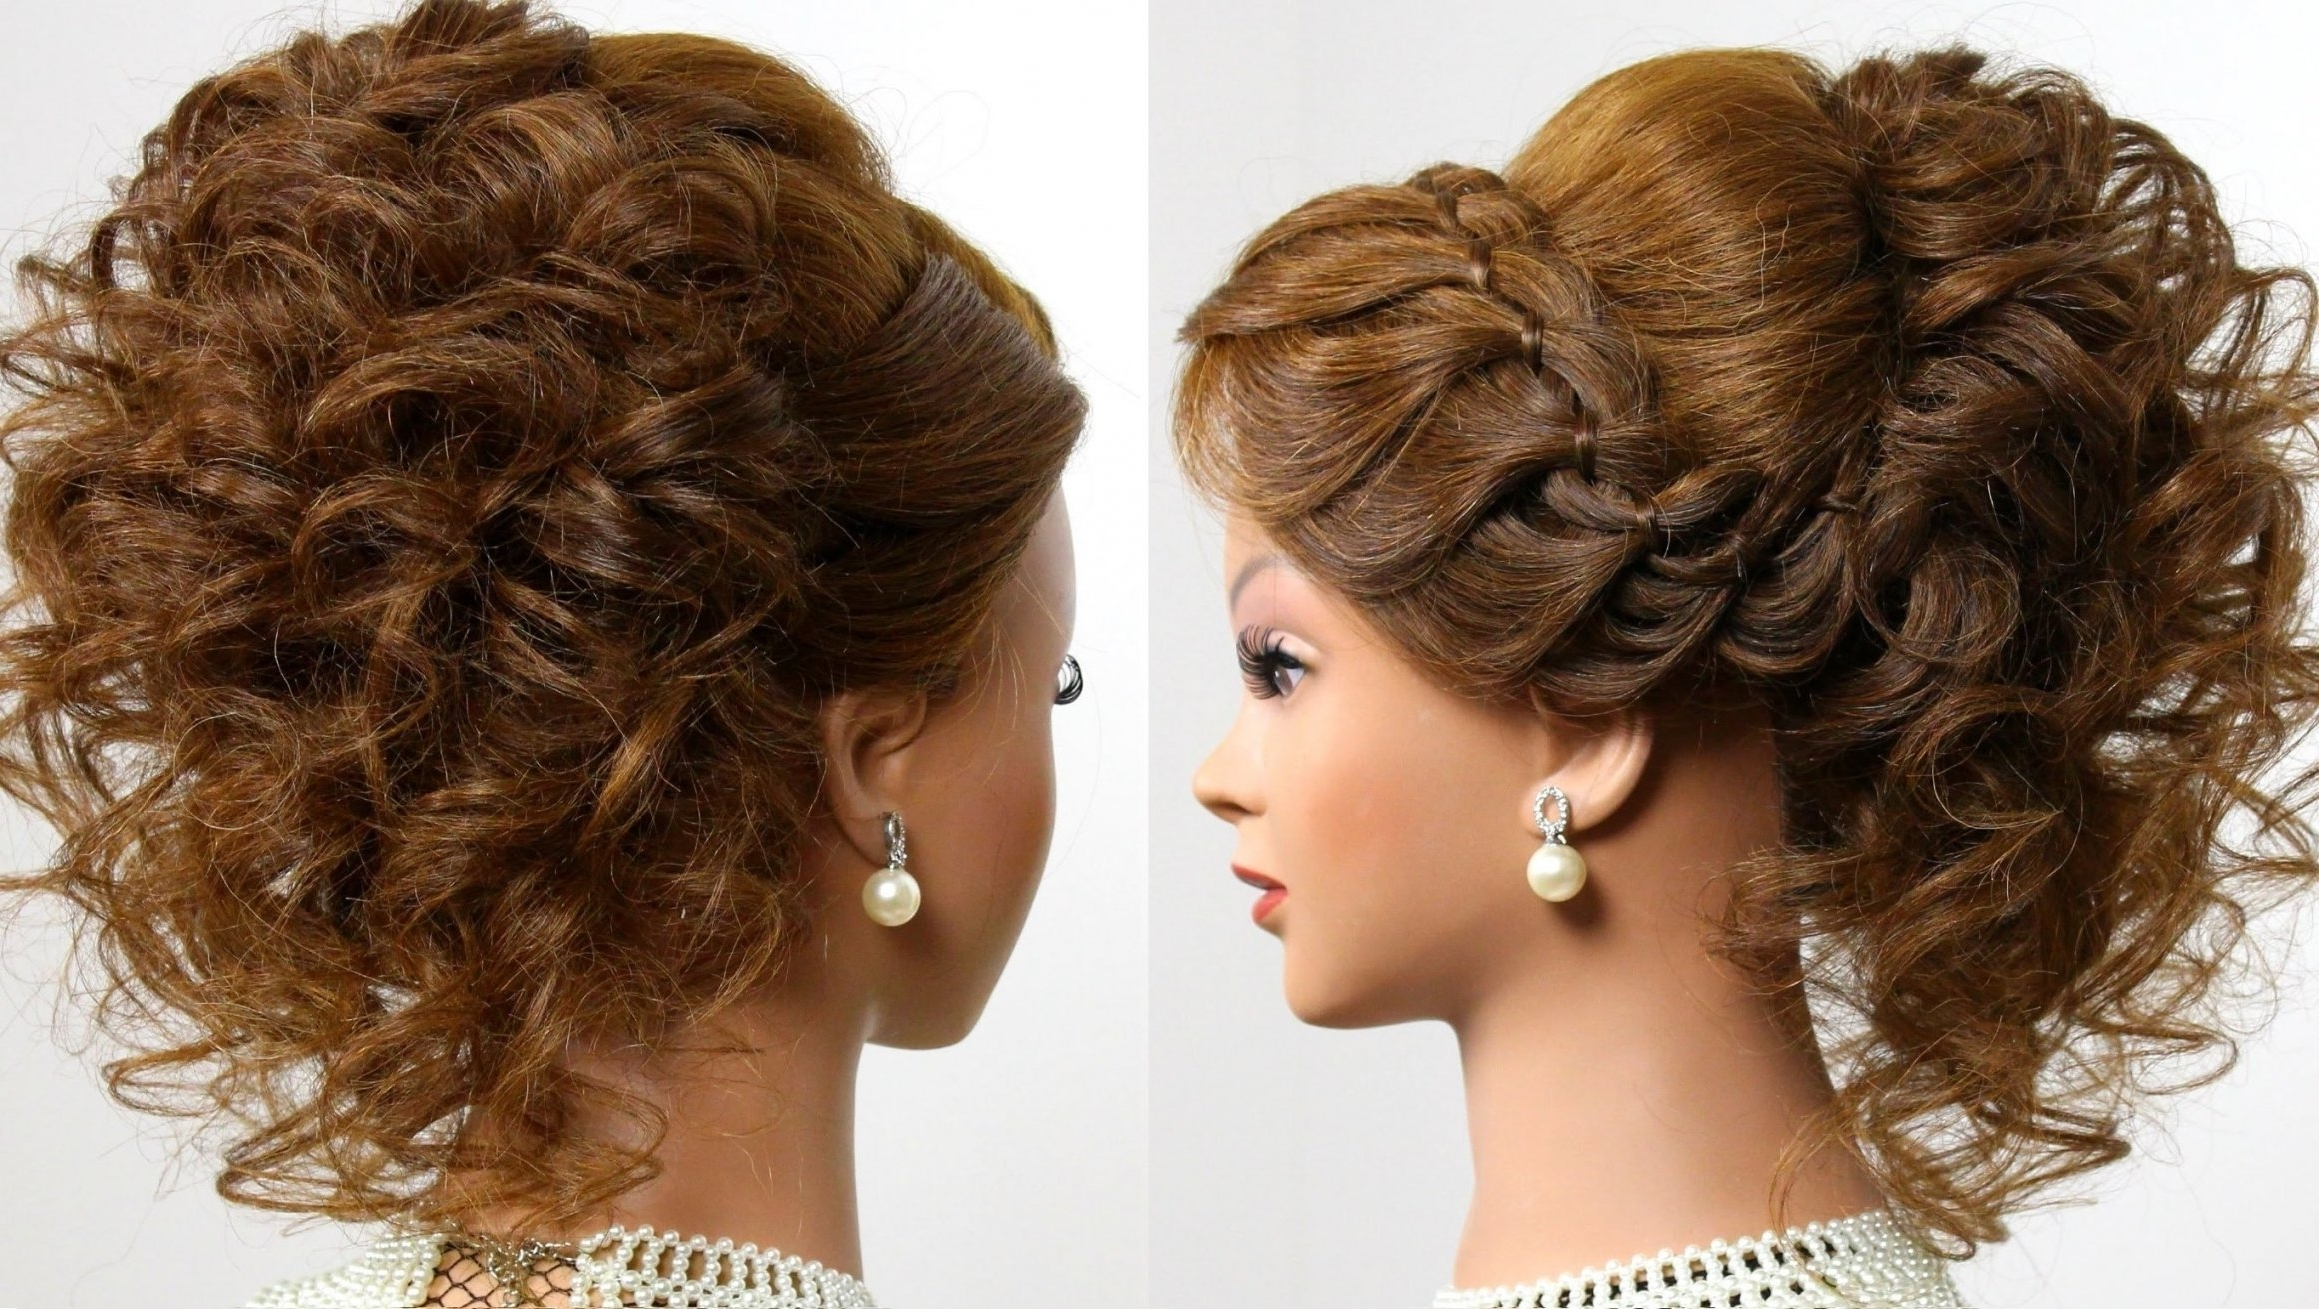 Updos For Medium Hair Prom Medium Hair Updo Hairstyles For Prom Pertaining To Formal Updo Hairstyles For Medium Hair (View 15 of 15)